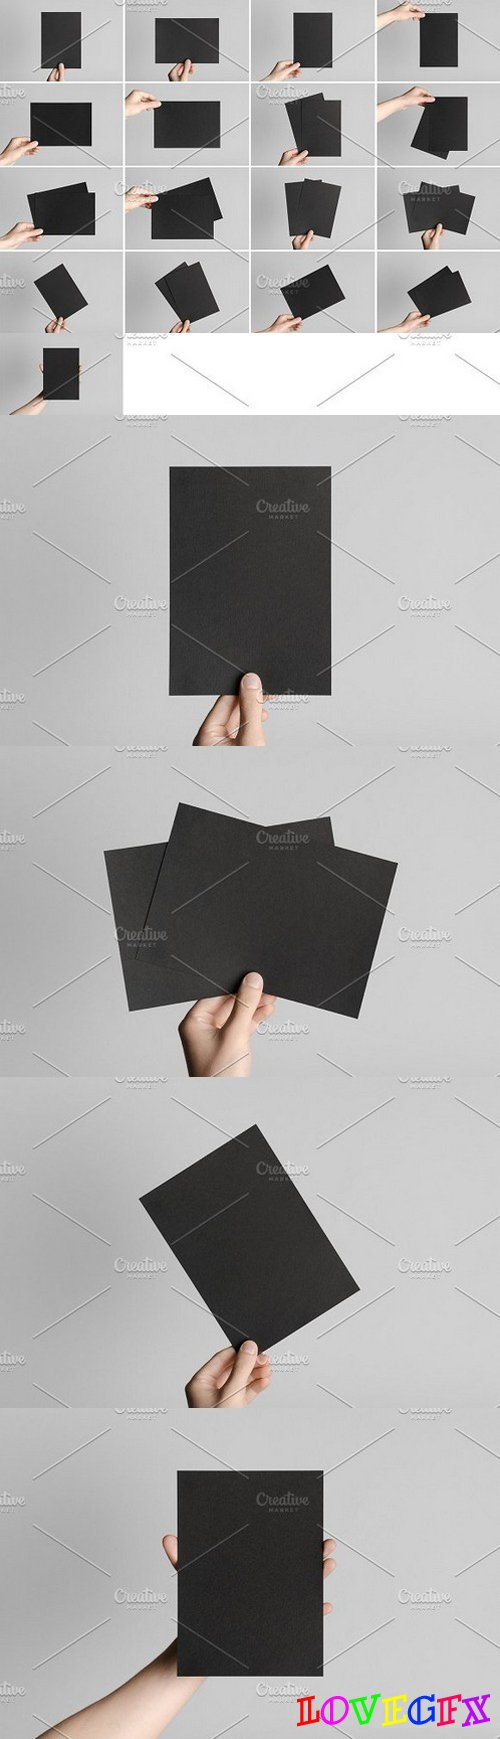 Black A5 Flyer Mock-Up Photo Bundle 1633098